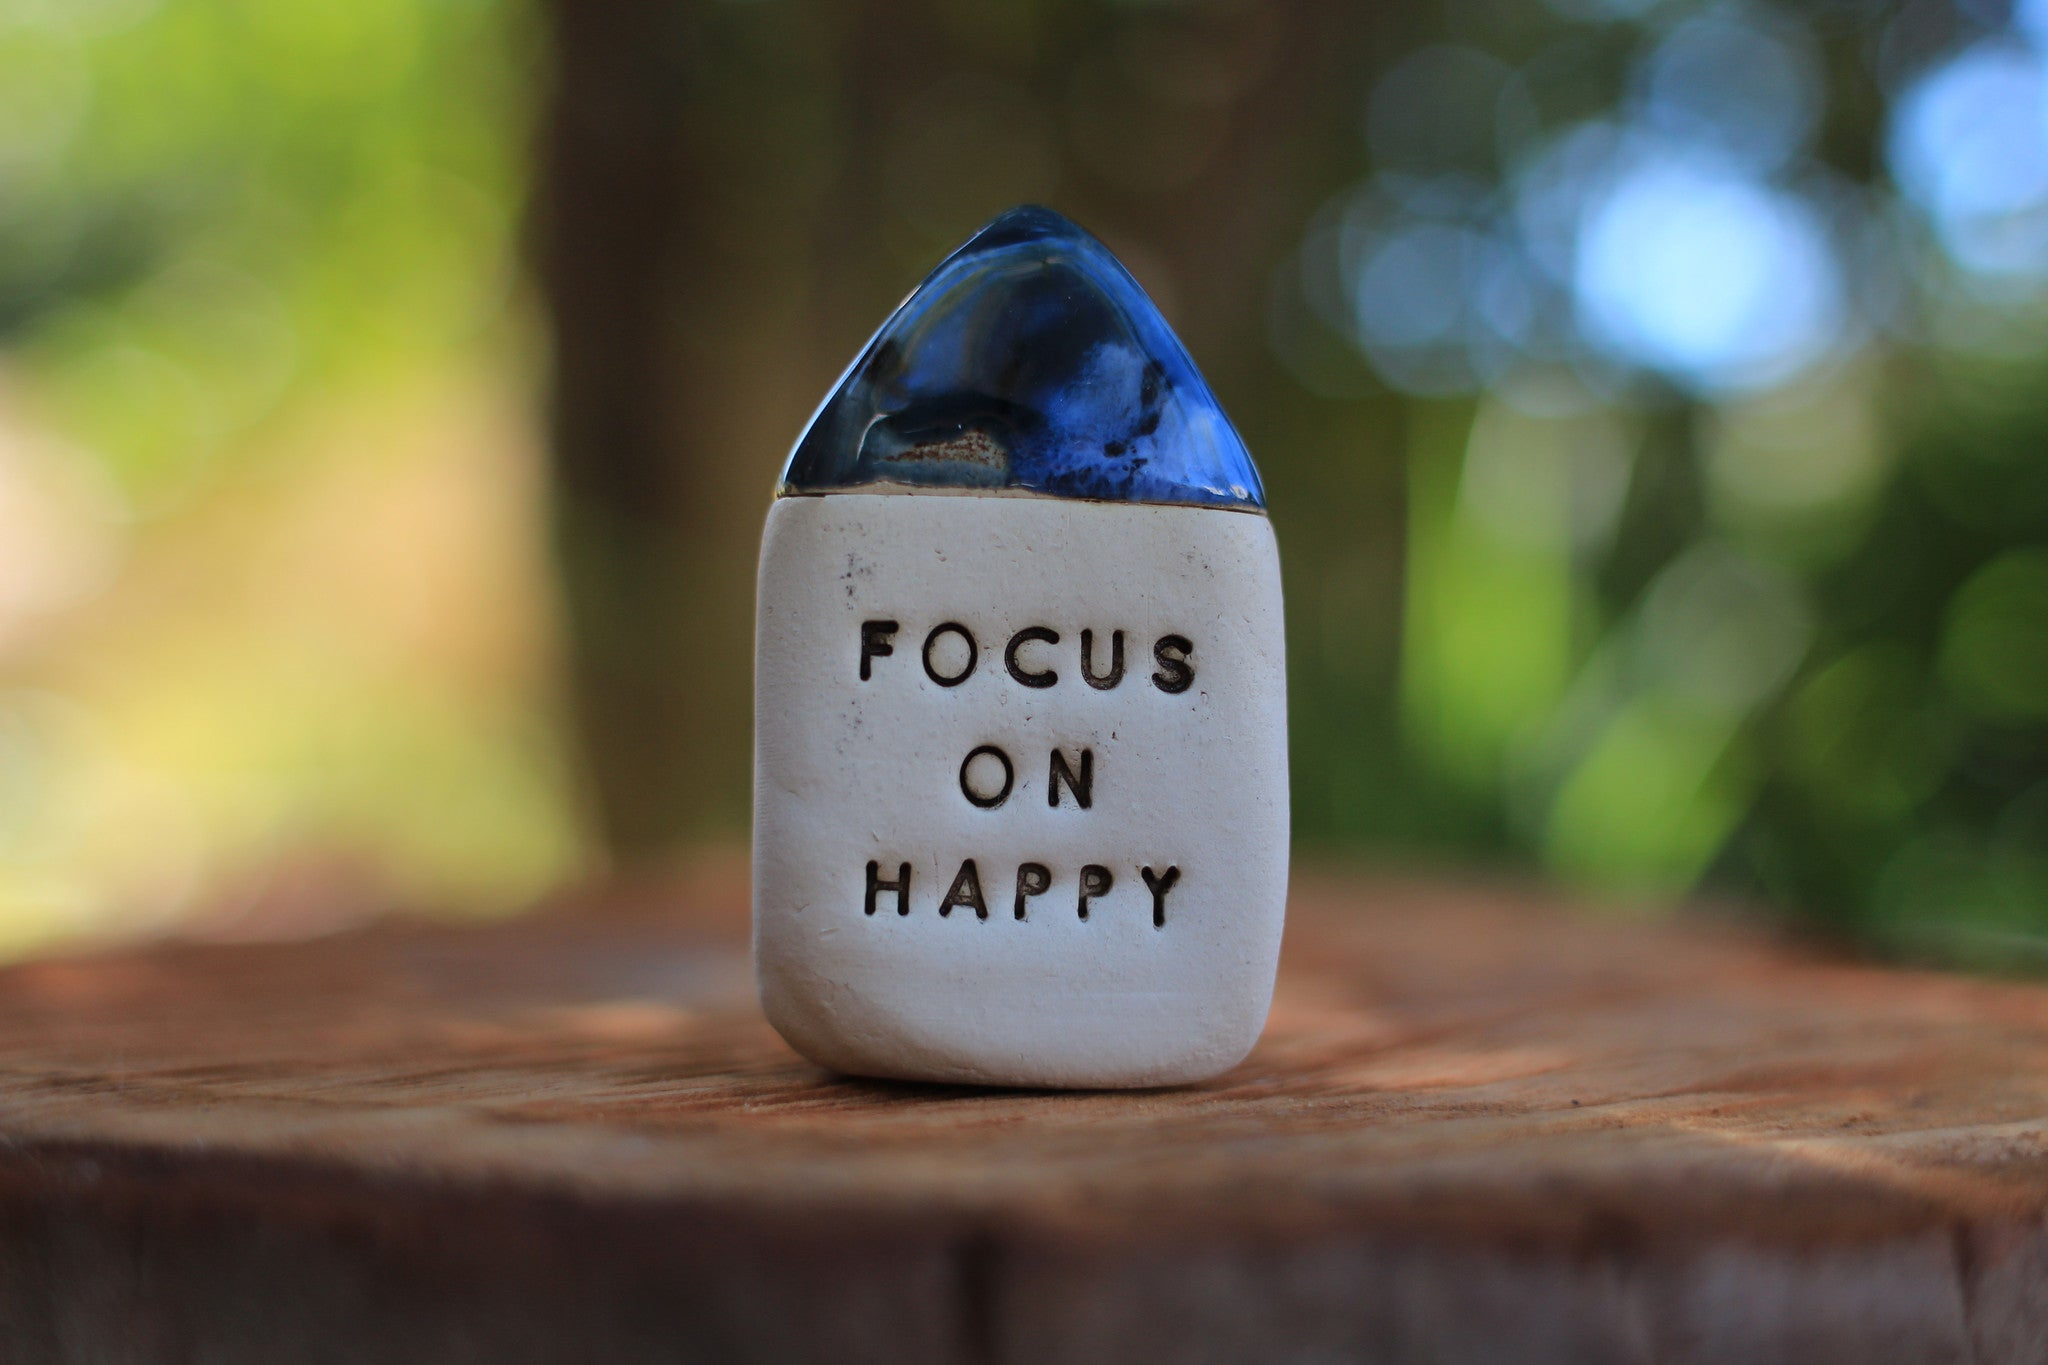 Focus on happy